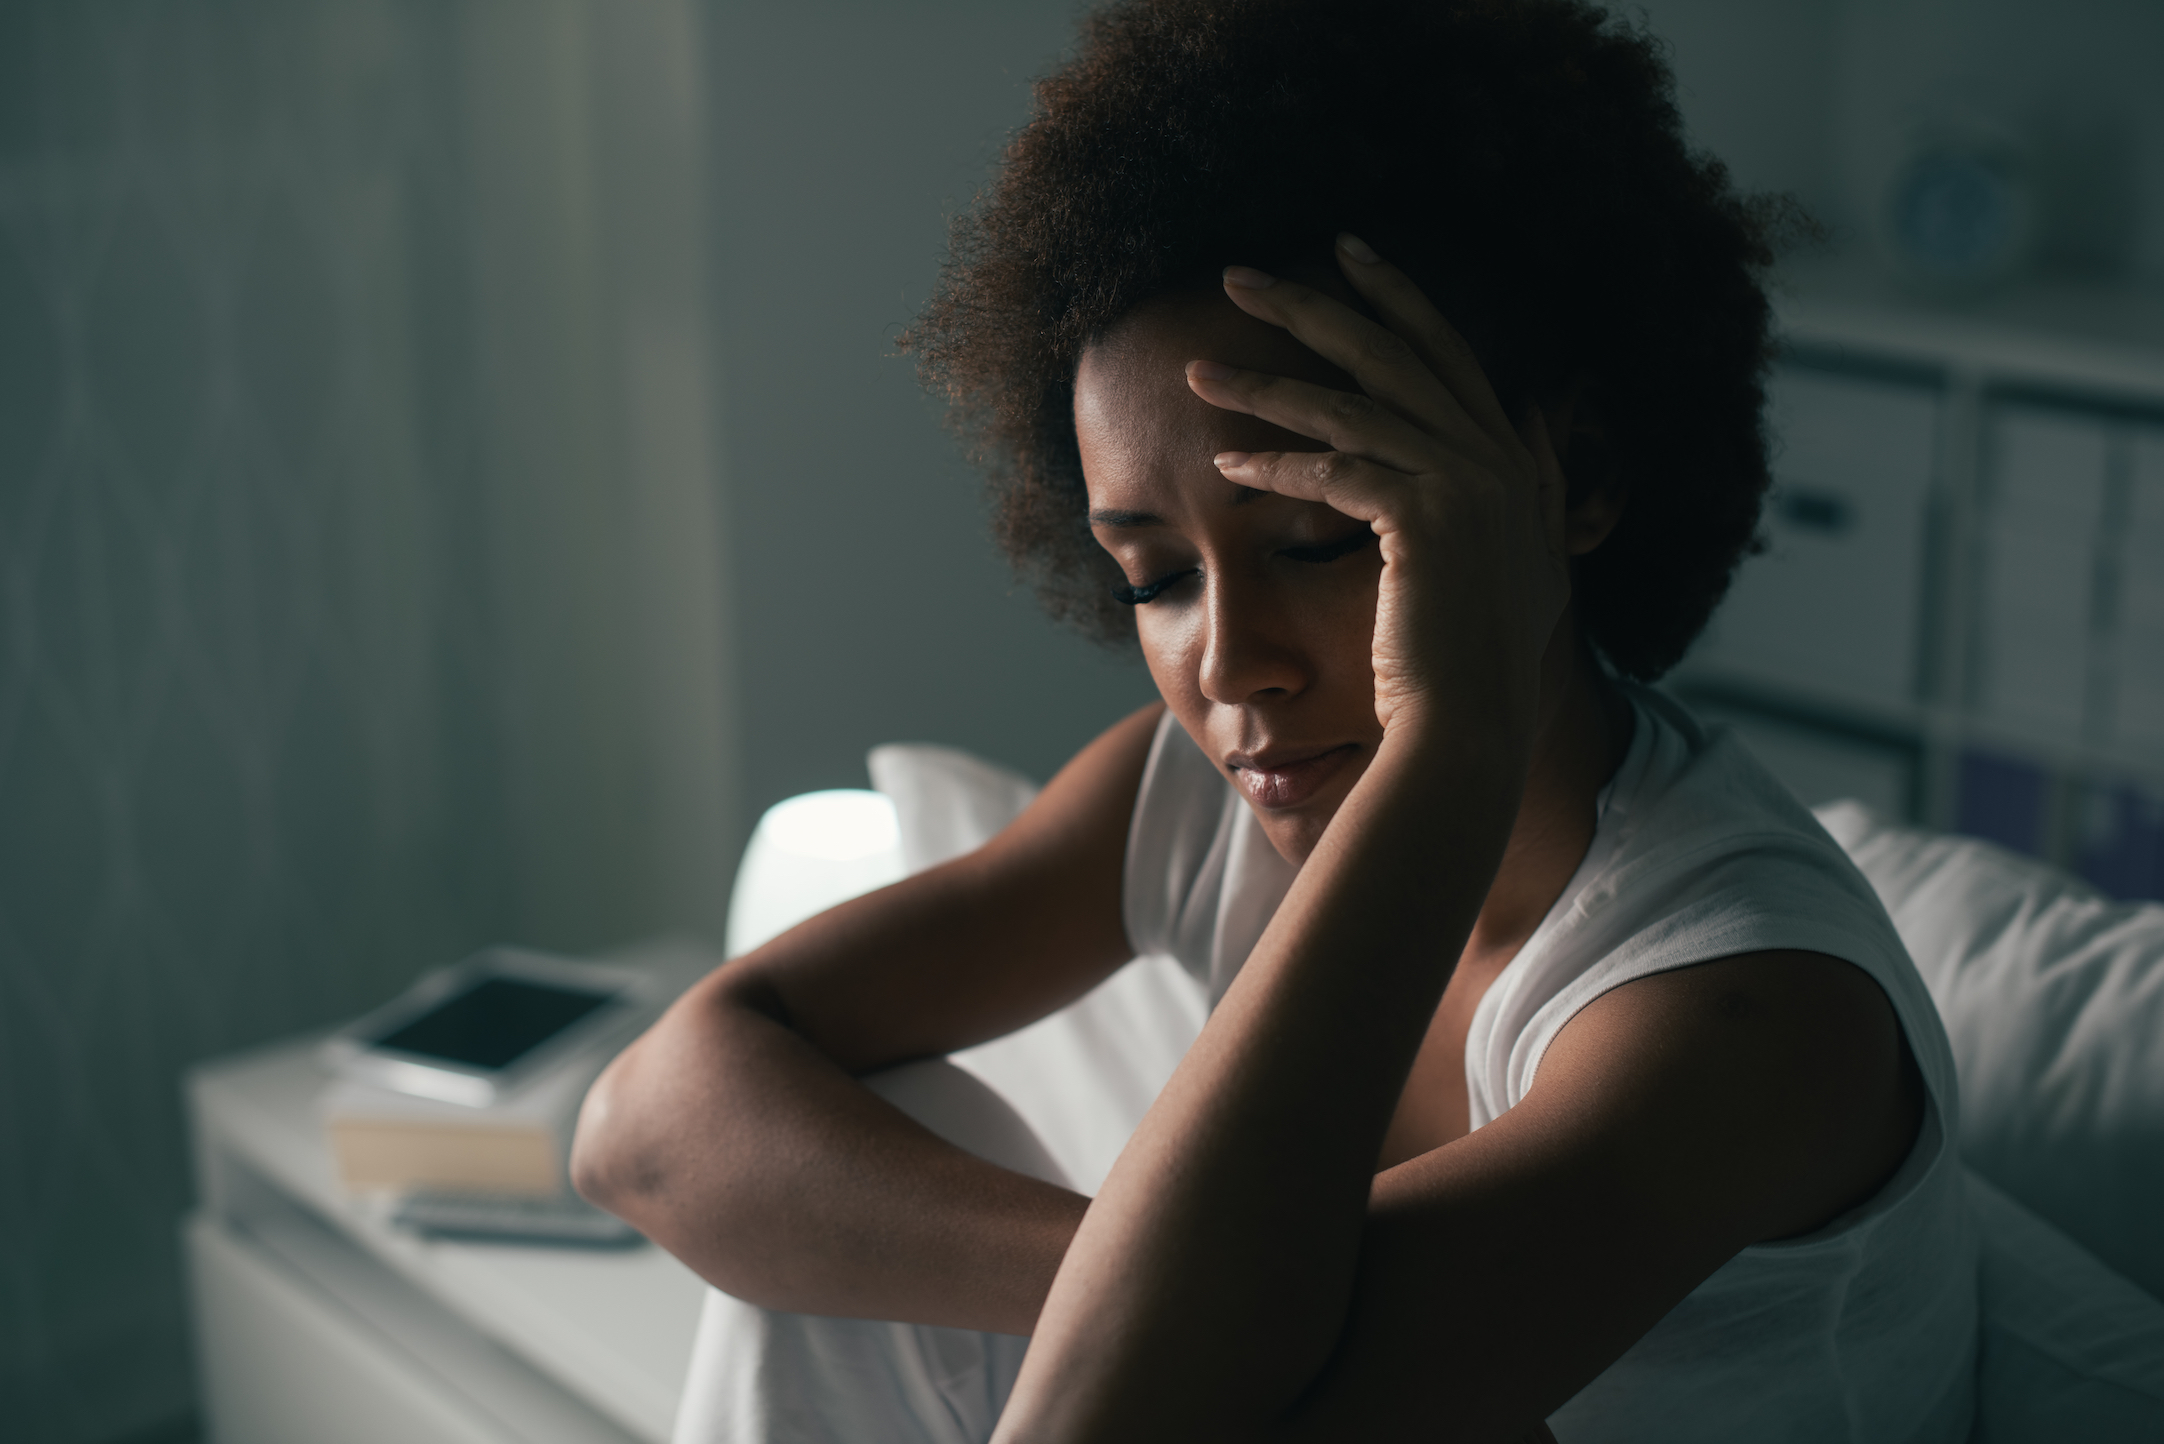 Brain cells that destroy and digest worn-out cells and debris go into overdrive in mice that are chronically deprived of sleep, a new study found.